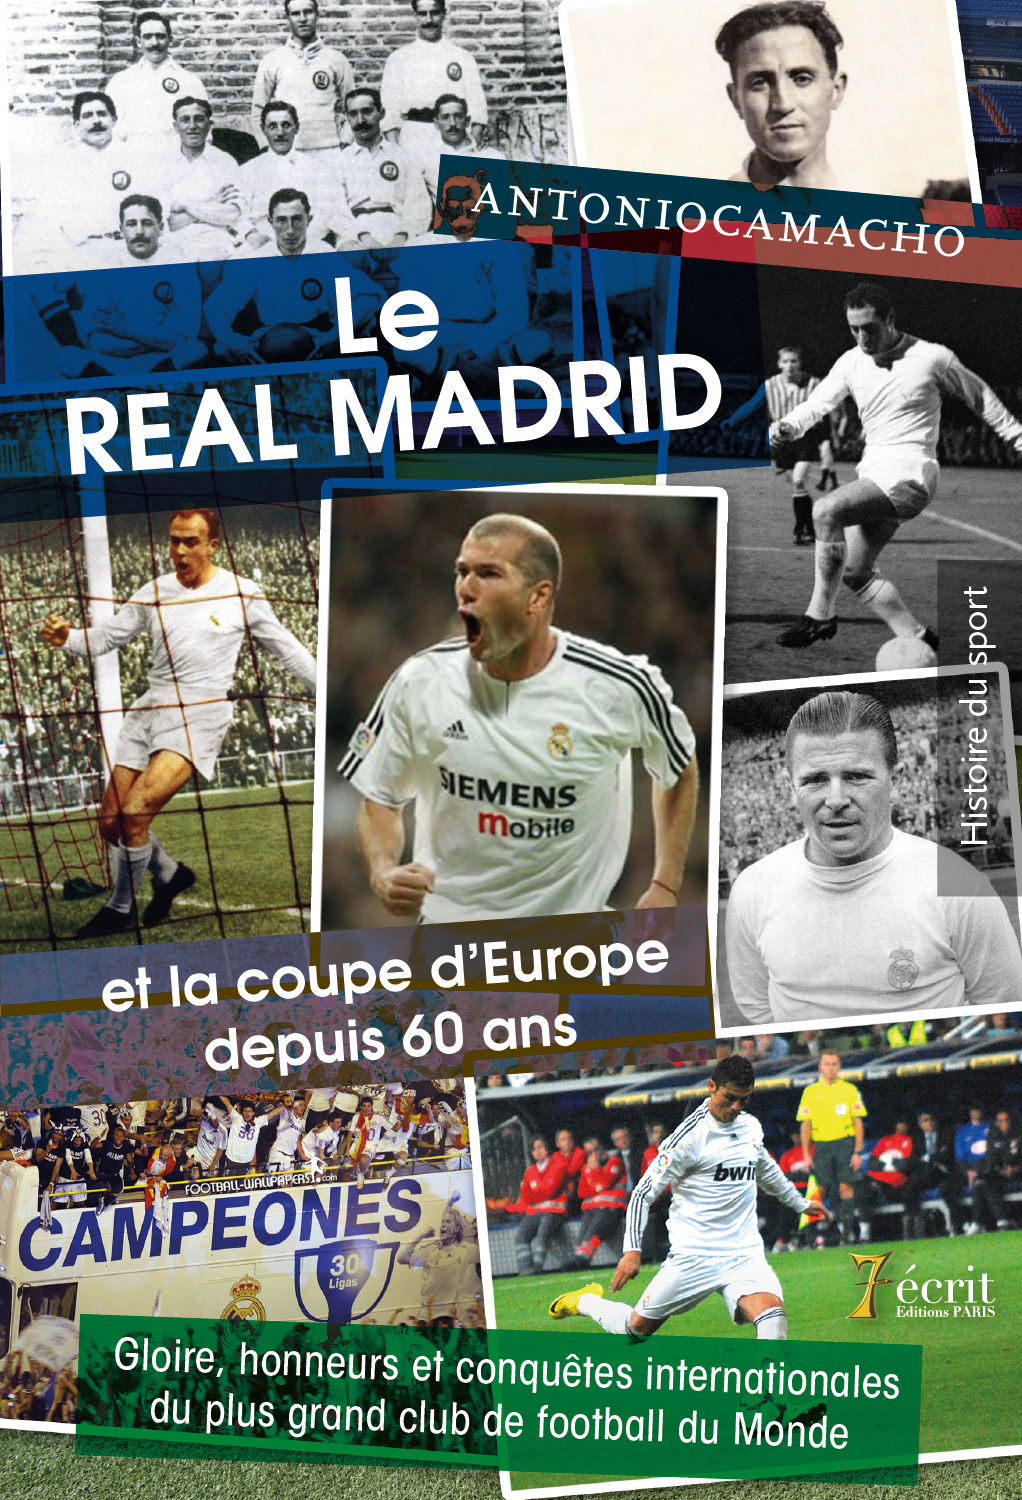 Le real madrid et la coupe d europe depuis 60 ans gloire - Football coupe d europe des clubs champions ...